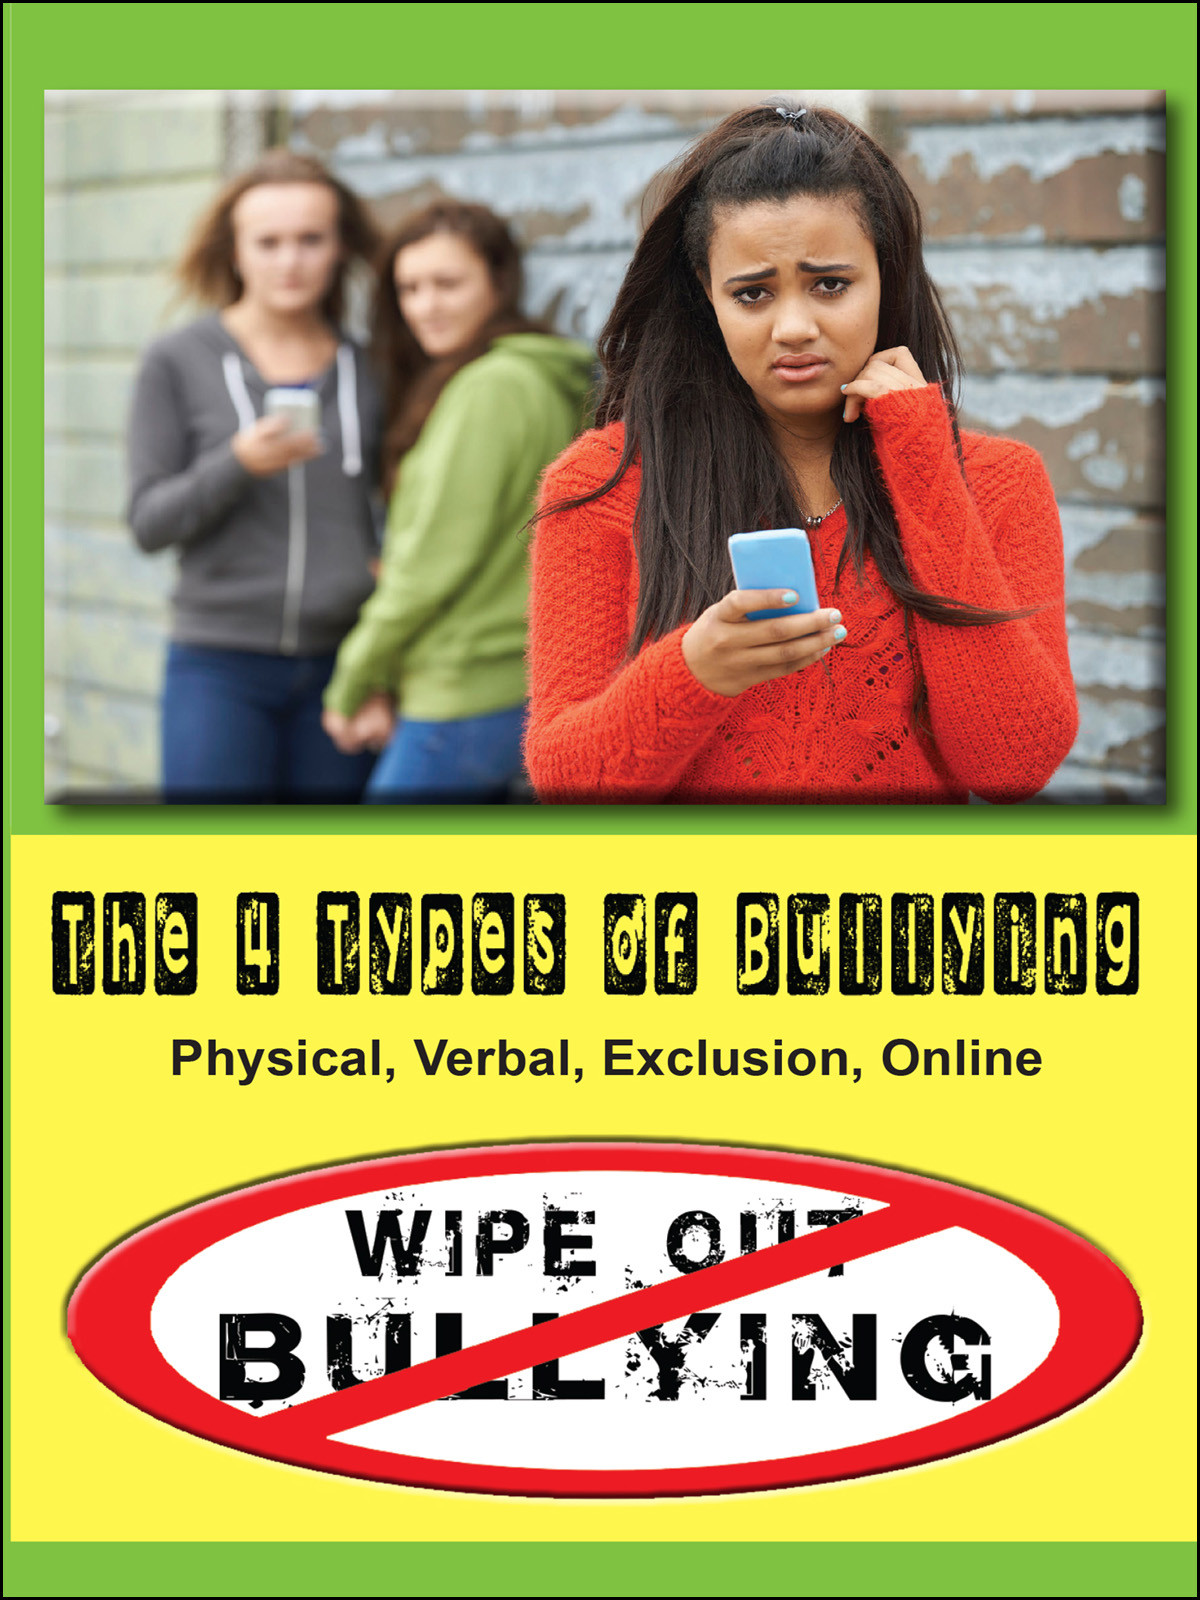 Q512 - The 4 Types of Bullying Physical, Verbal, Exclusion, Online